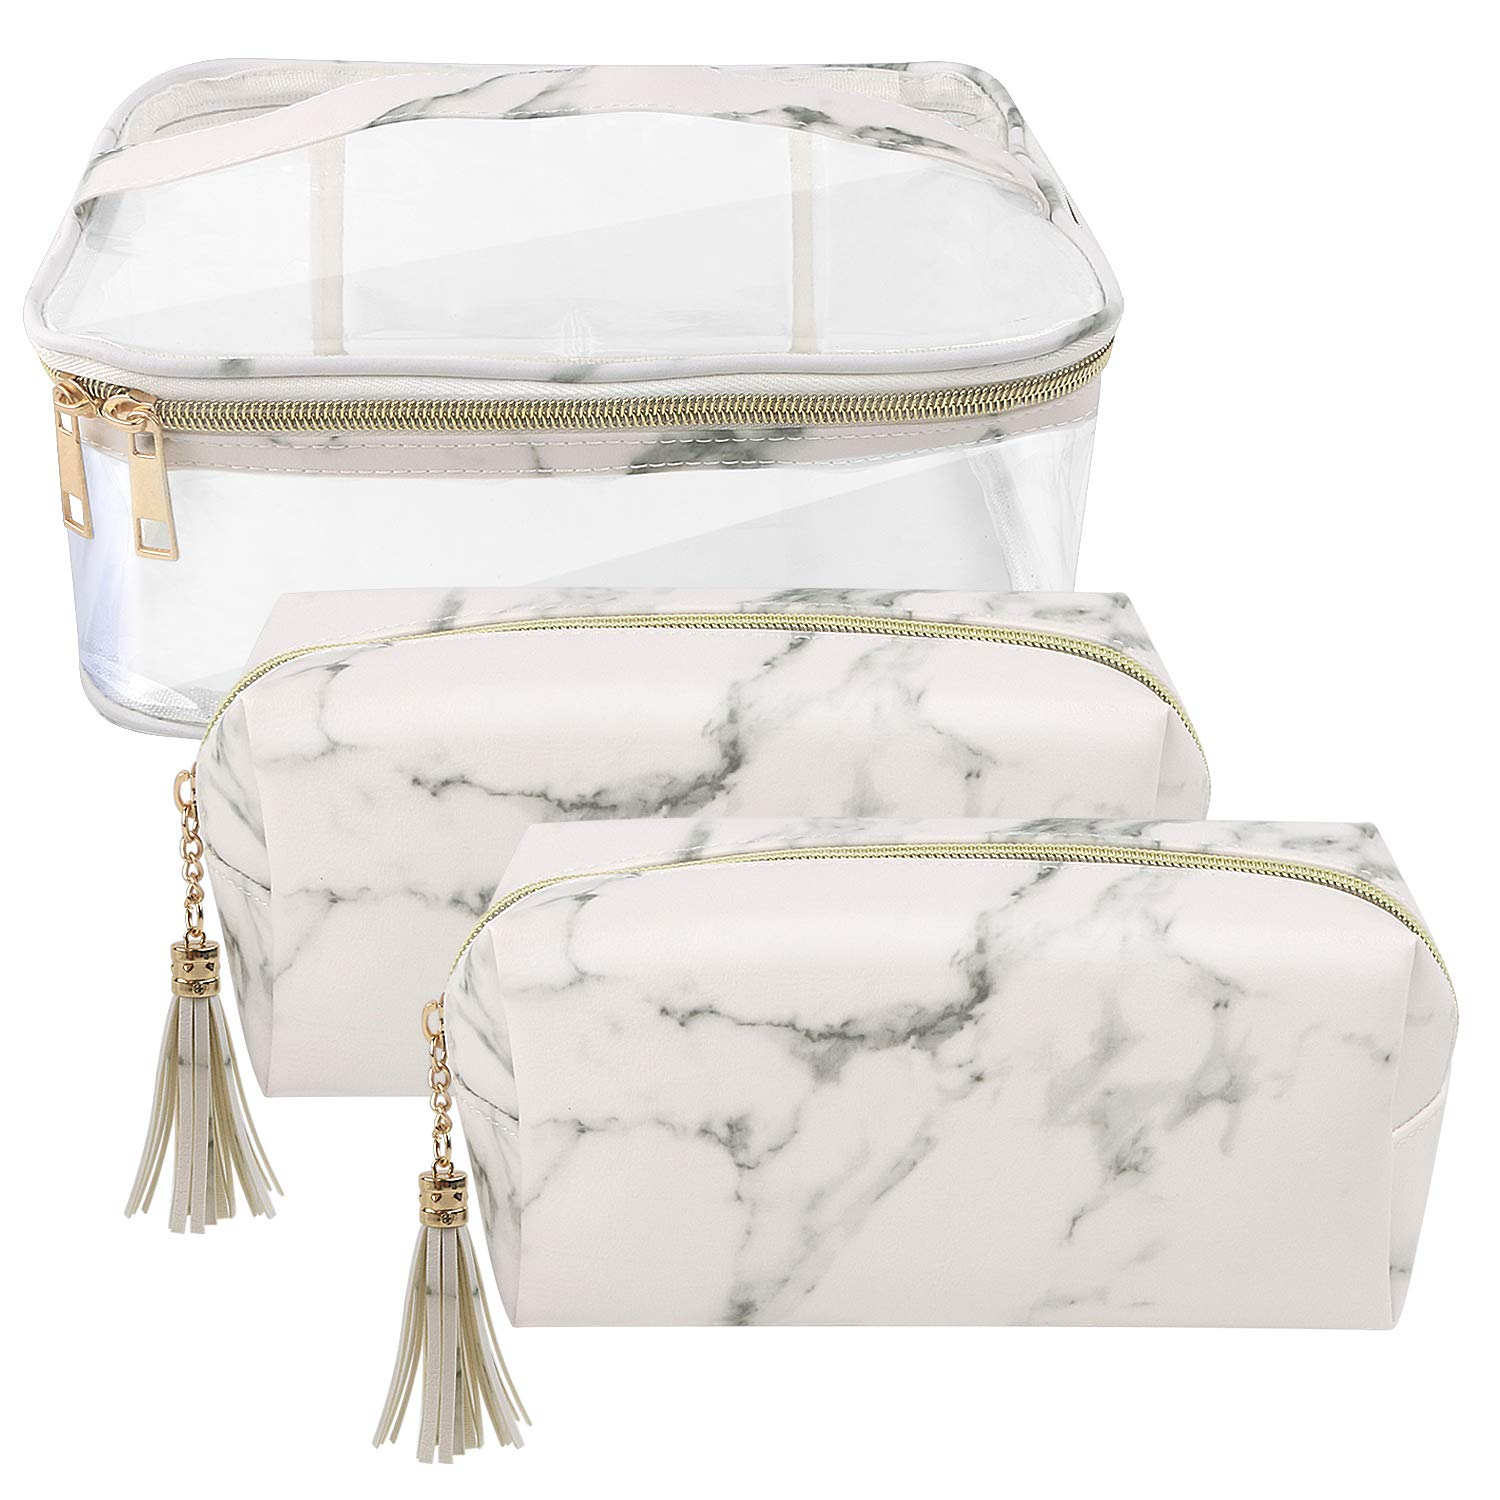 Marble Cosmetic Bag for Women 3PCS Set by NATURE Ann Lady Toiletry Bags Set Portable Storage Bag Waterproof Handbag Travel Organizer Makeup Case Transparent White-Marble